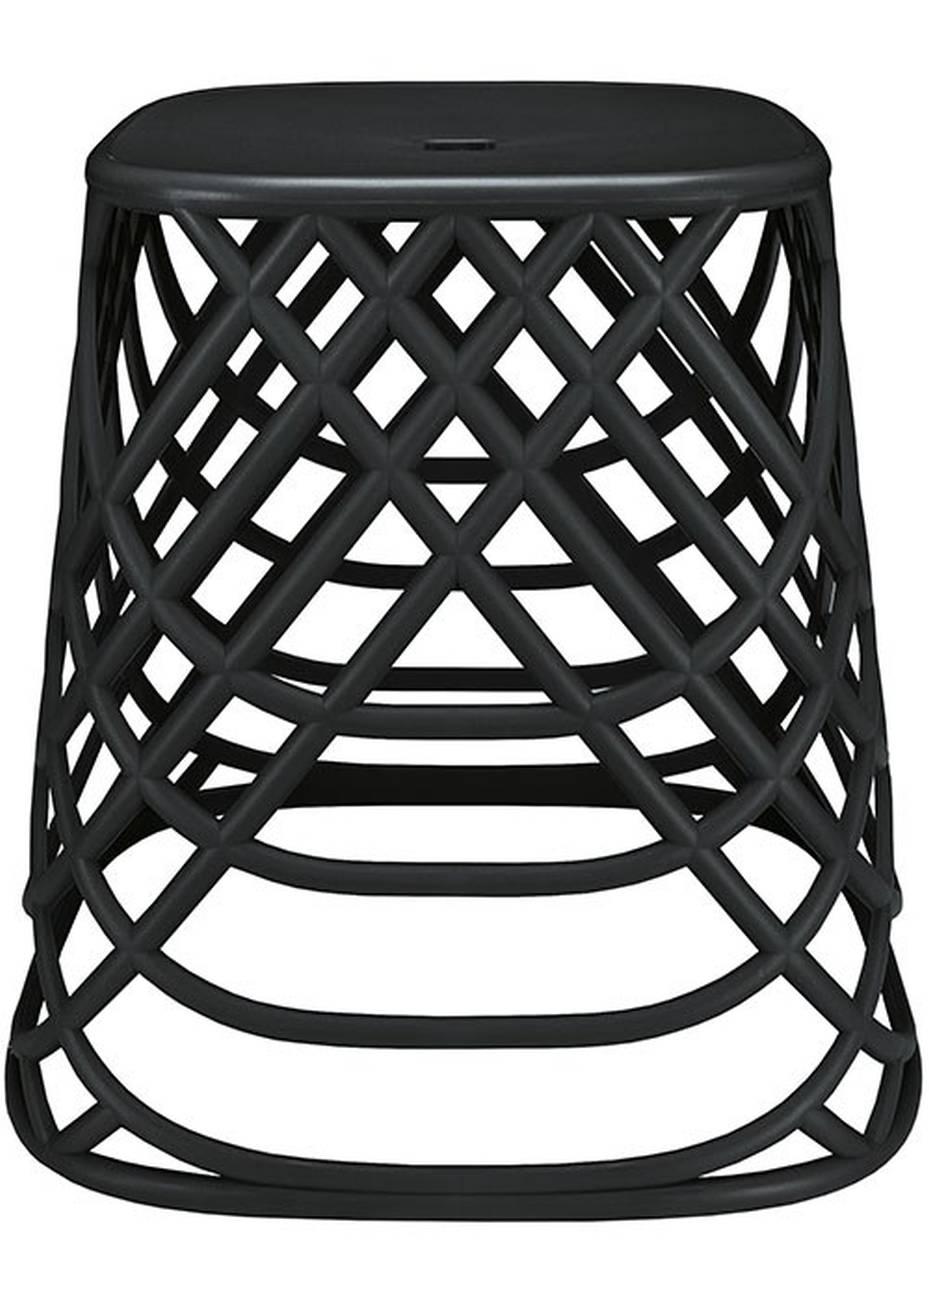 Hocker Scandic Chair Polypropylen Schwarz 43,5x43x43,5cm BxHxT